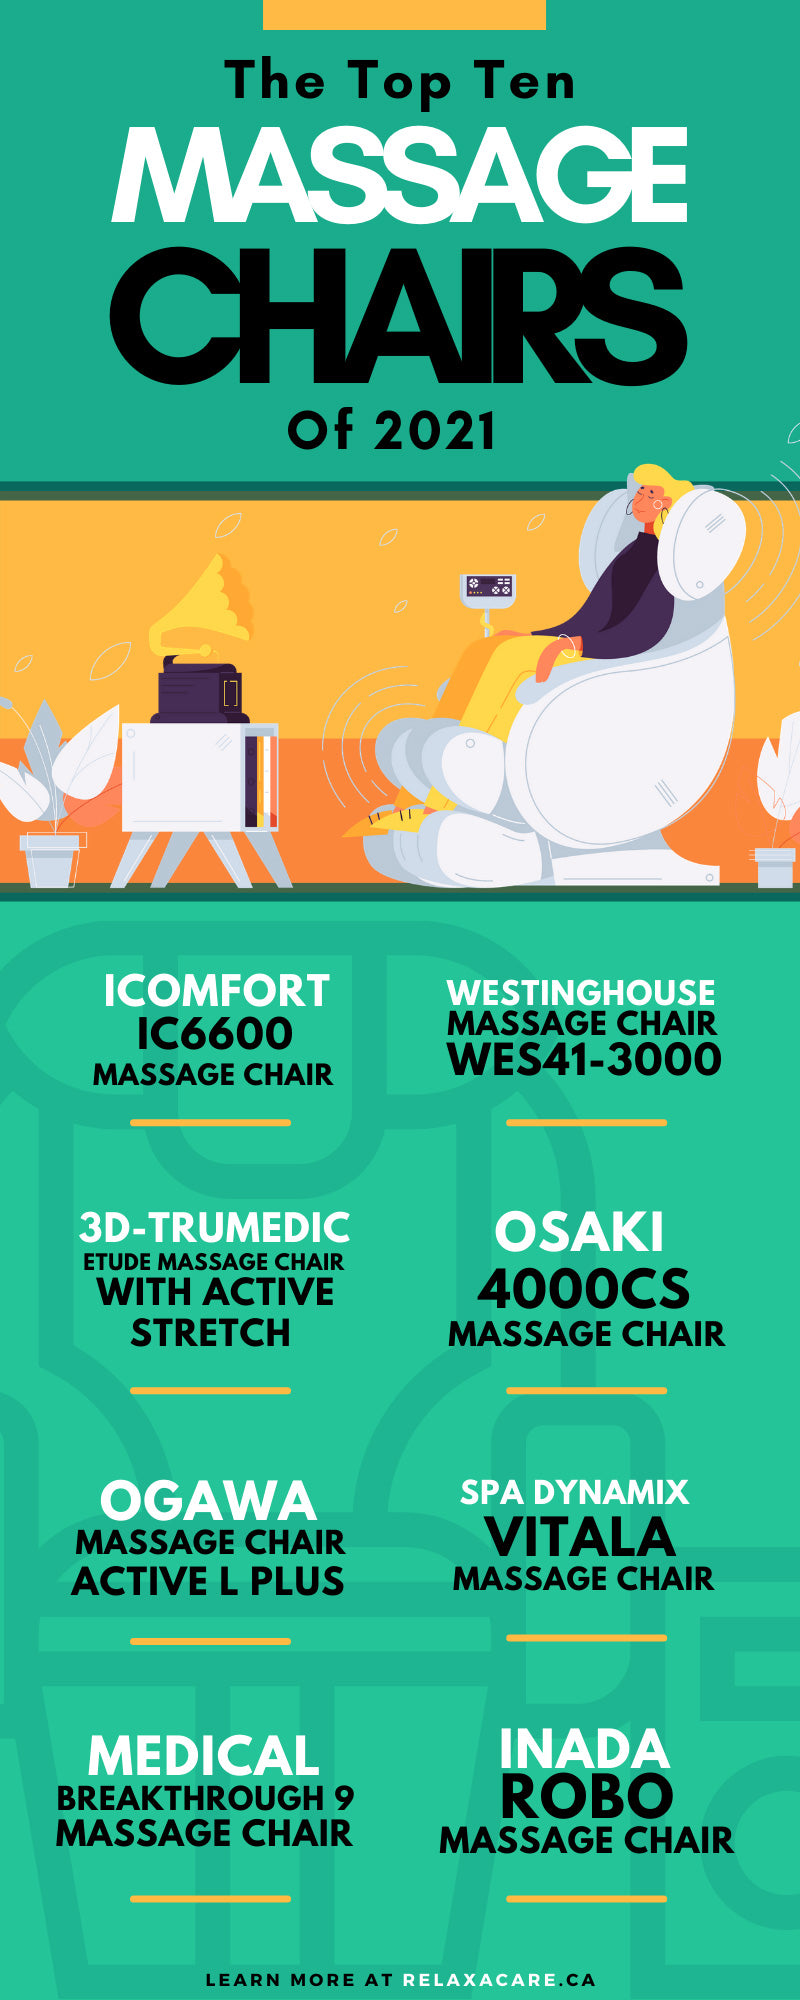 The Top Ten Massage Chairs of 2021